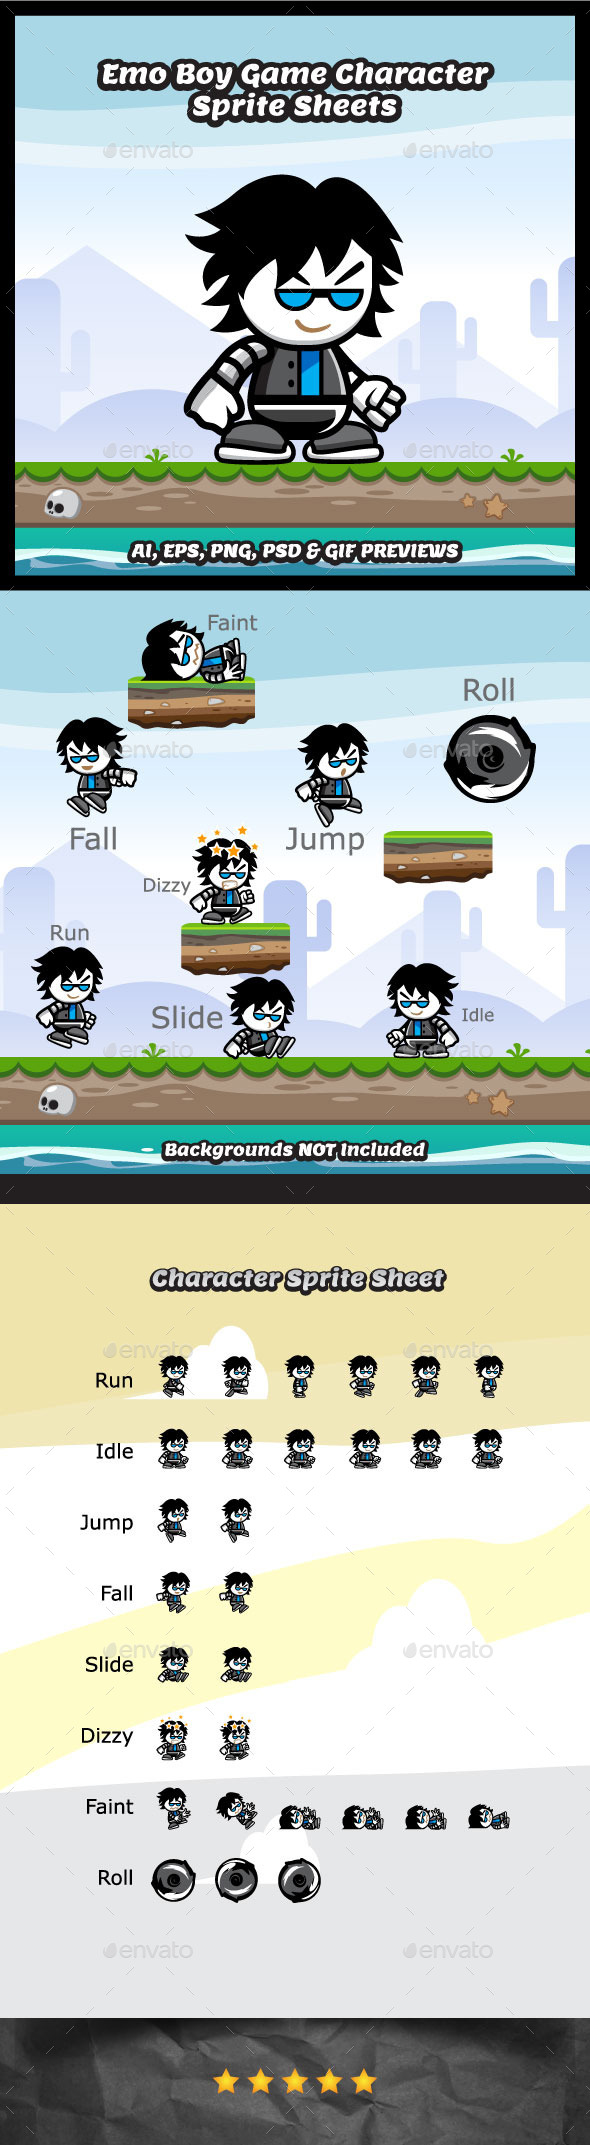 Emo Boy Game Character Sprite Sheets - Sprites Game Assets